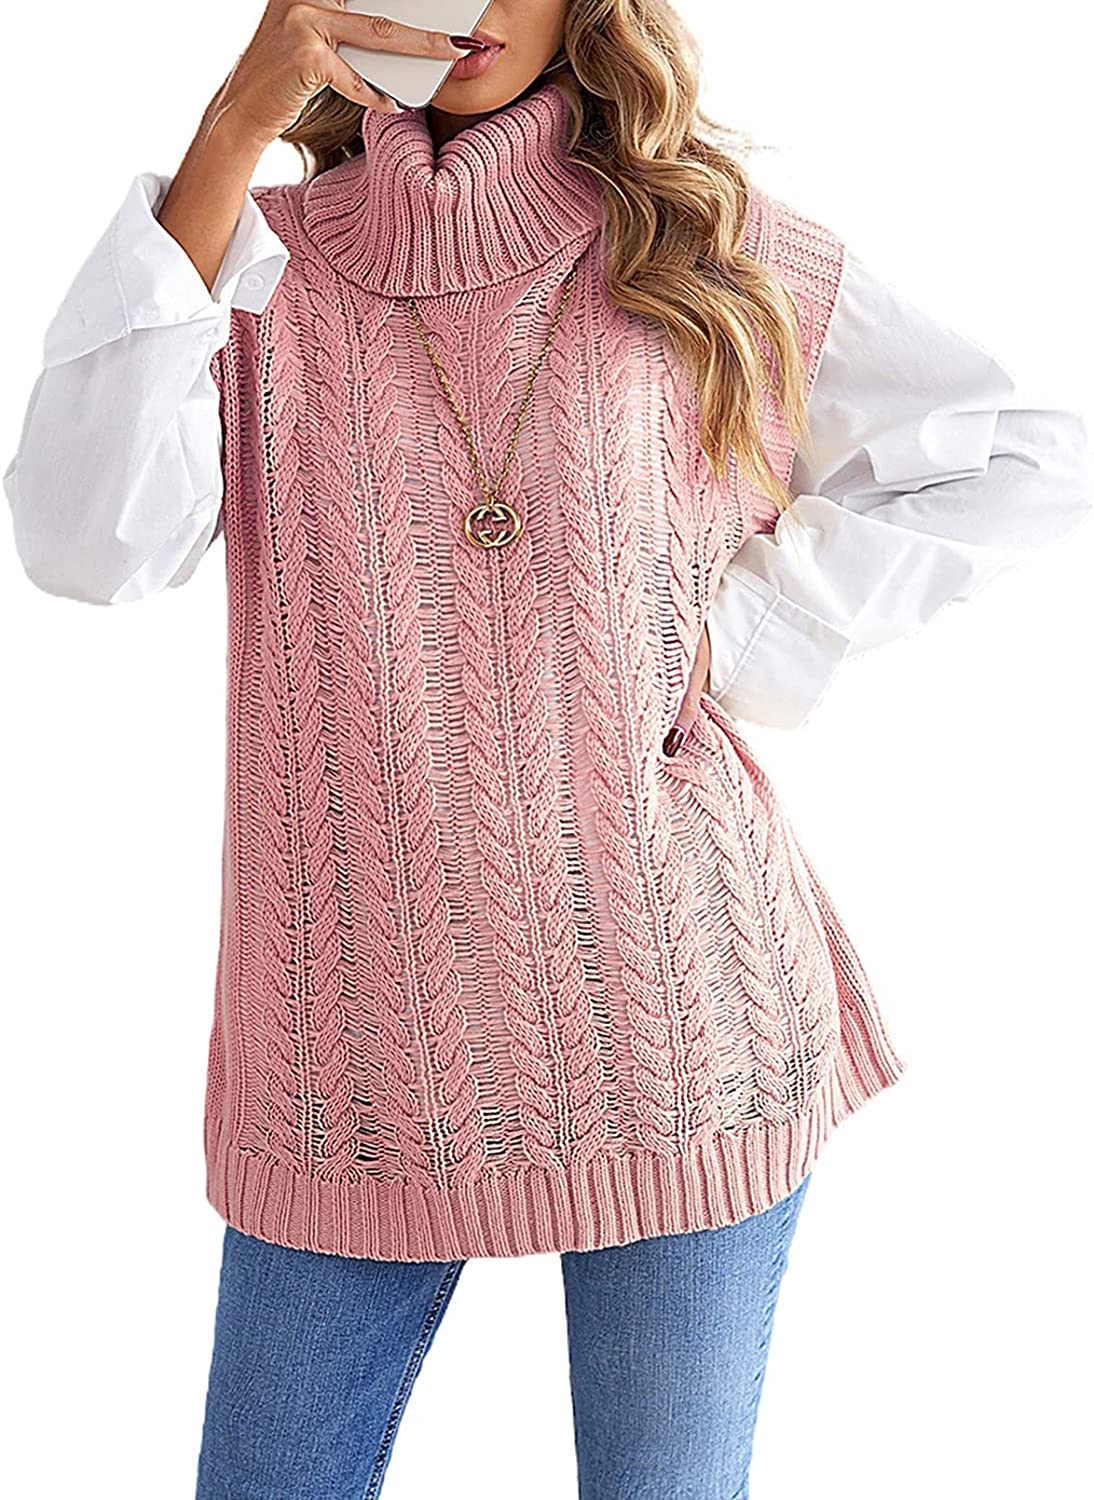 SHEWIN Womens Knit Sweater Vest Turtleneck Sleeveless Solid Color Pullover Sweaters Tops